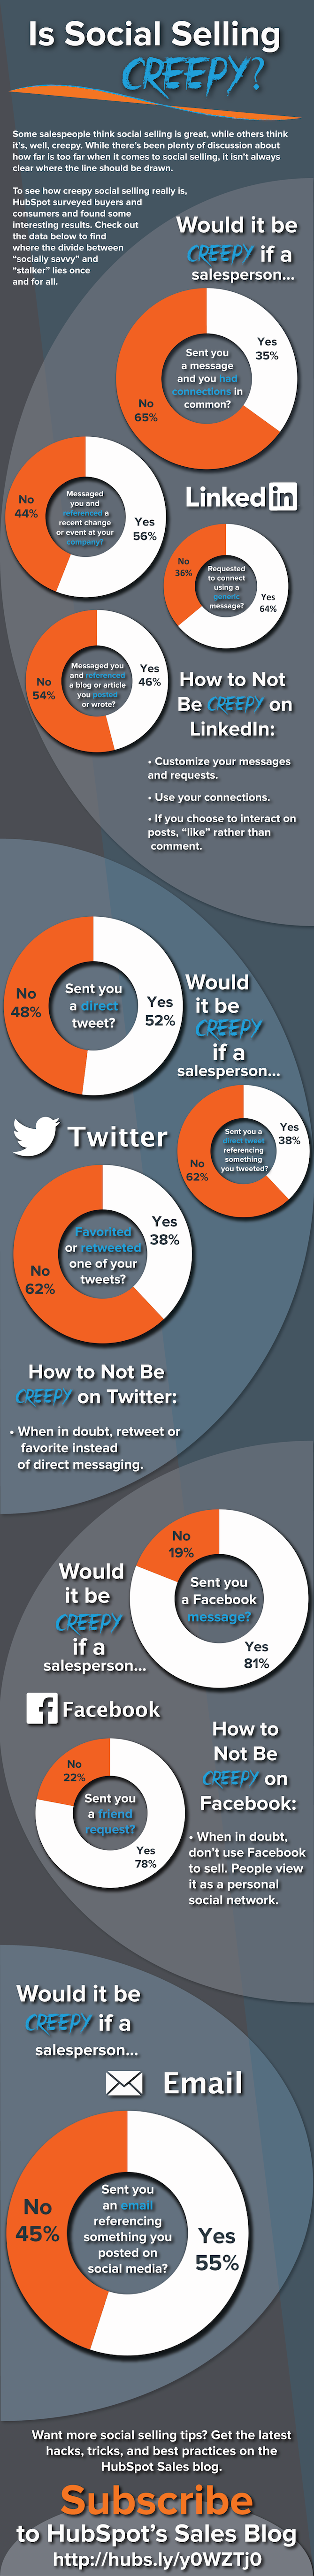 Social Selling Creepy Infographic